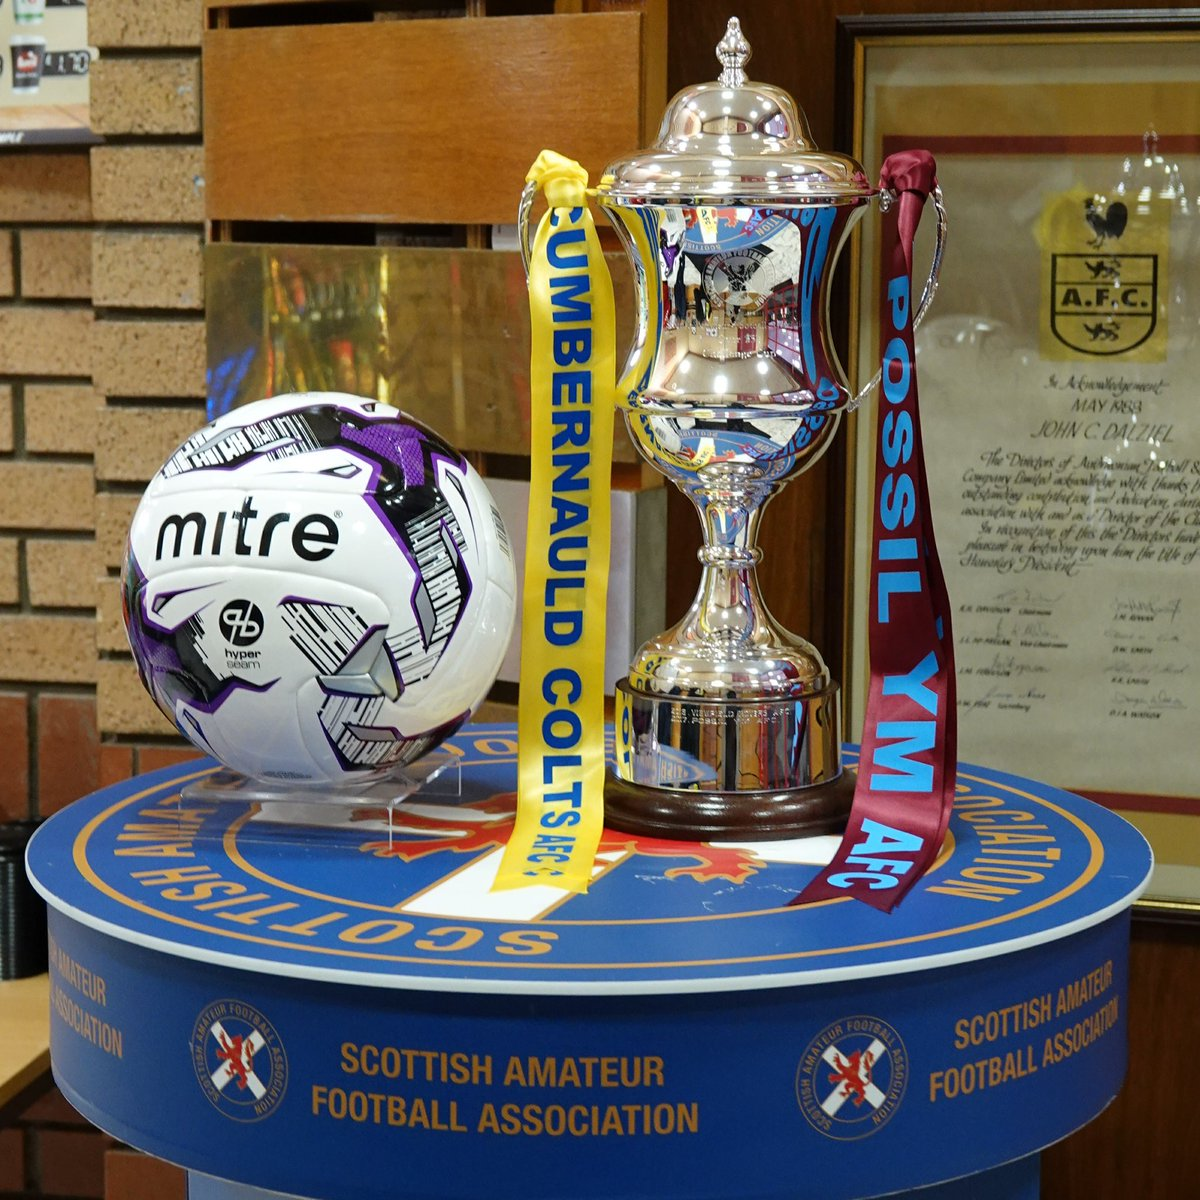 Scottish amateur football assosiation